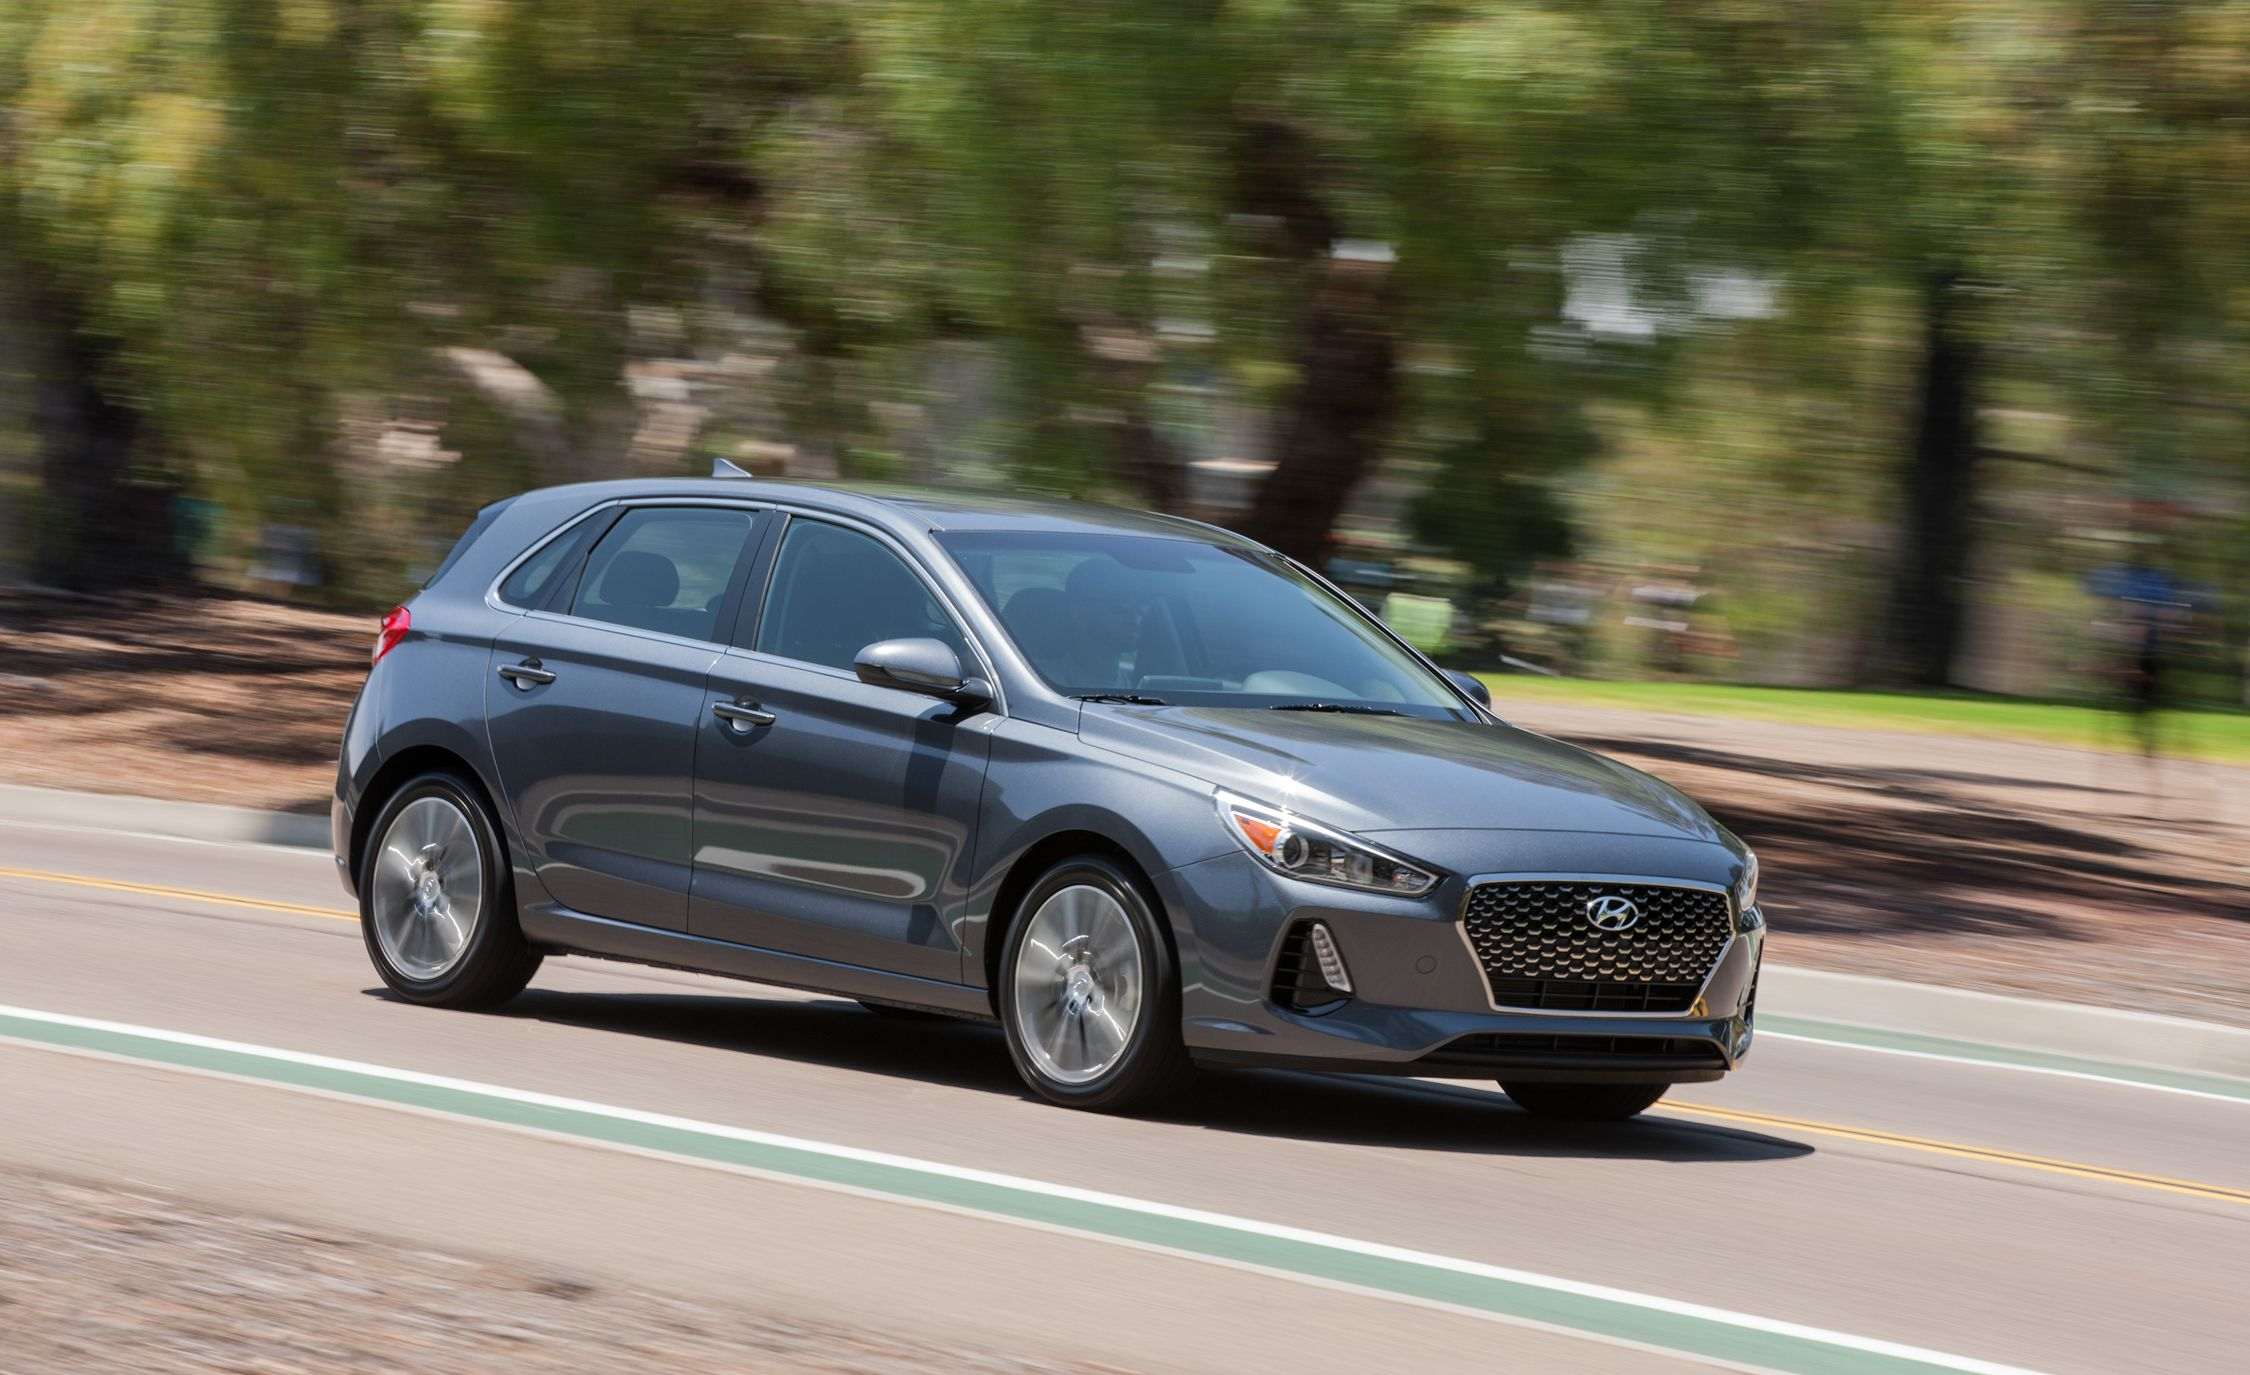 2019 Hyundai Elantra Gt Reviews Price Photos And Specs Car Driver